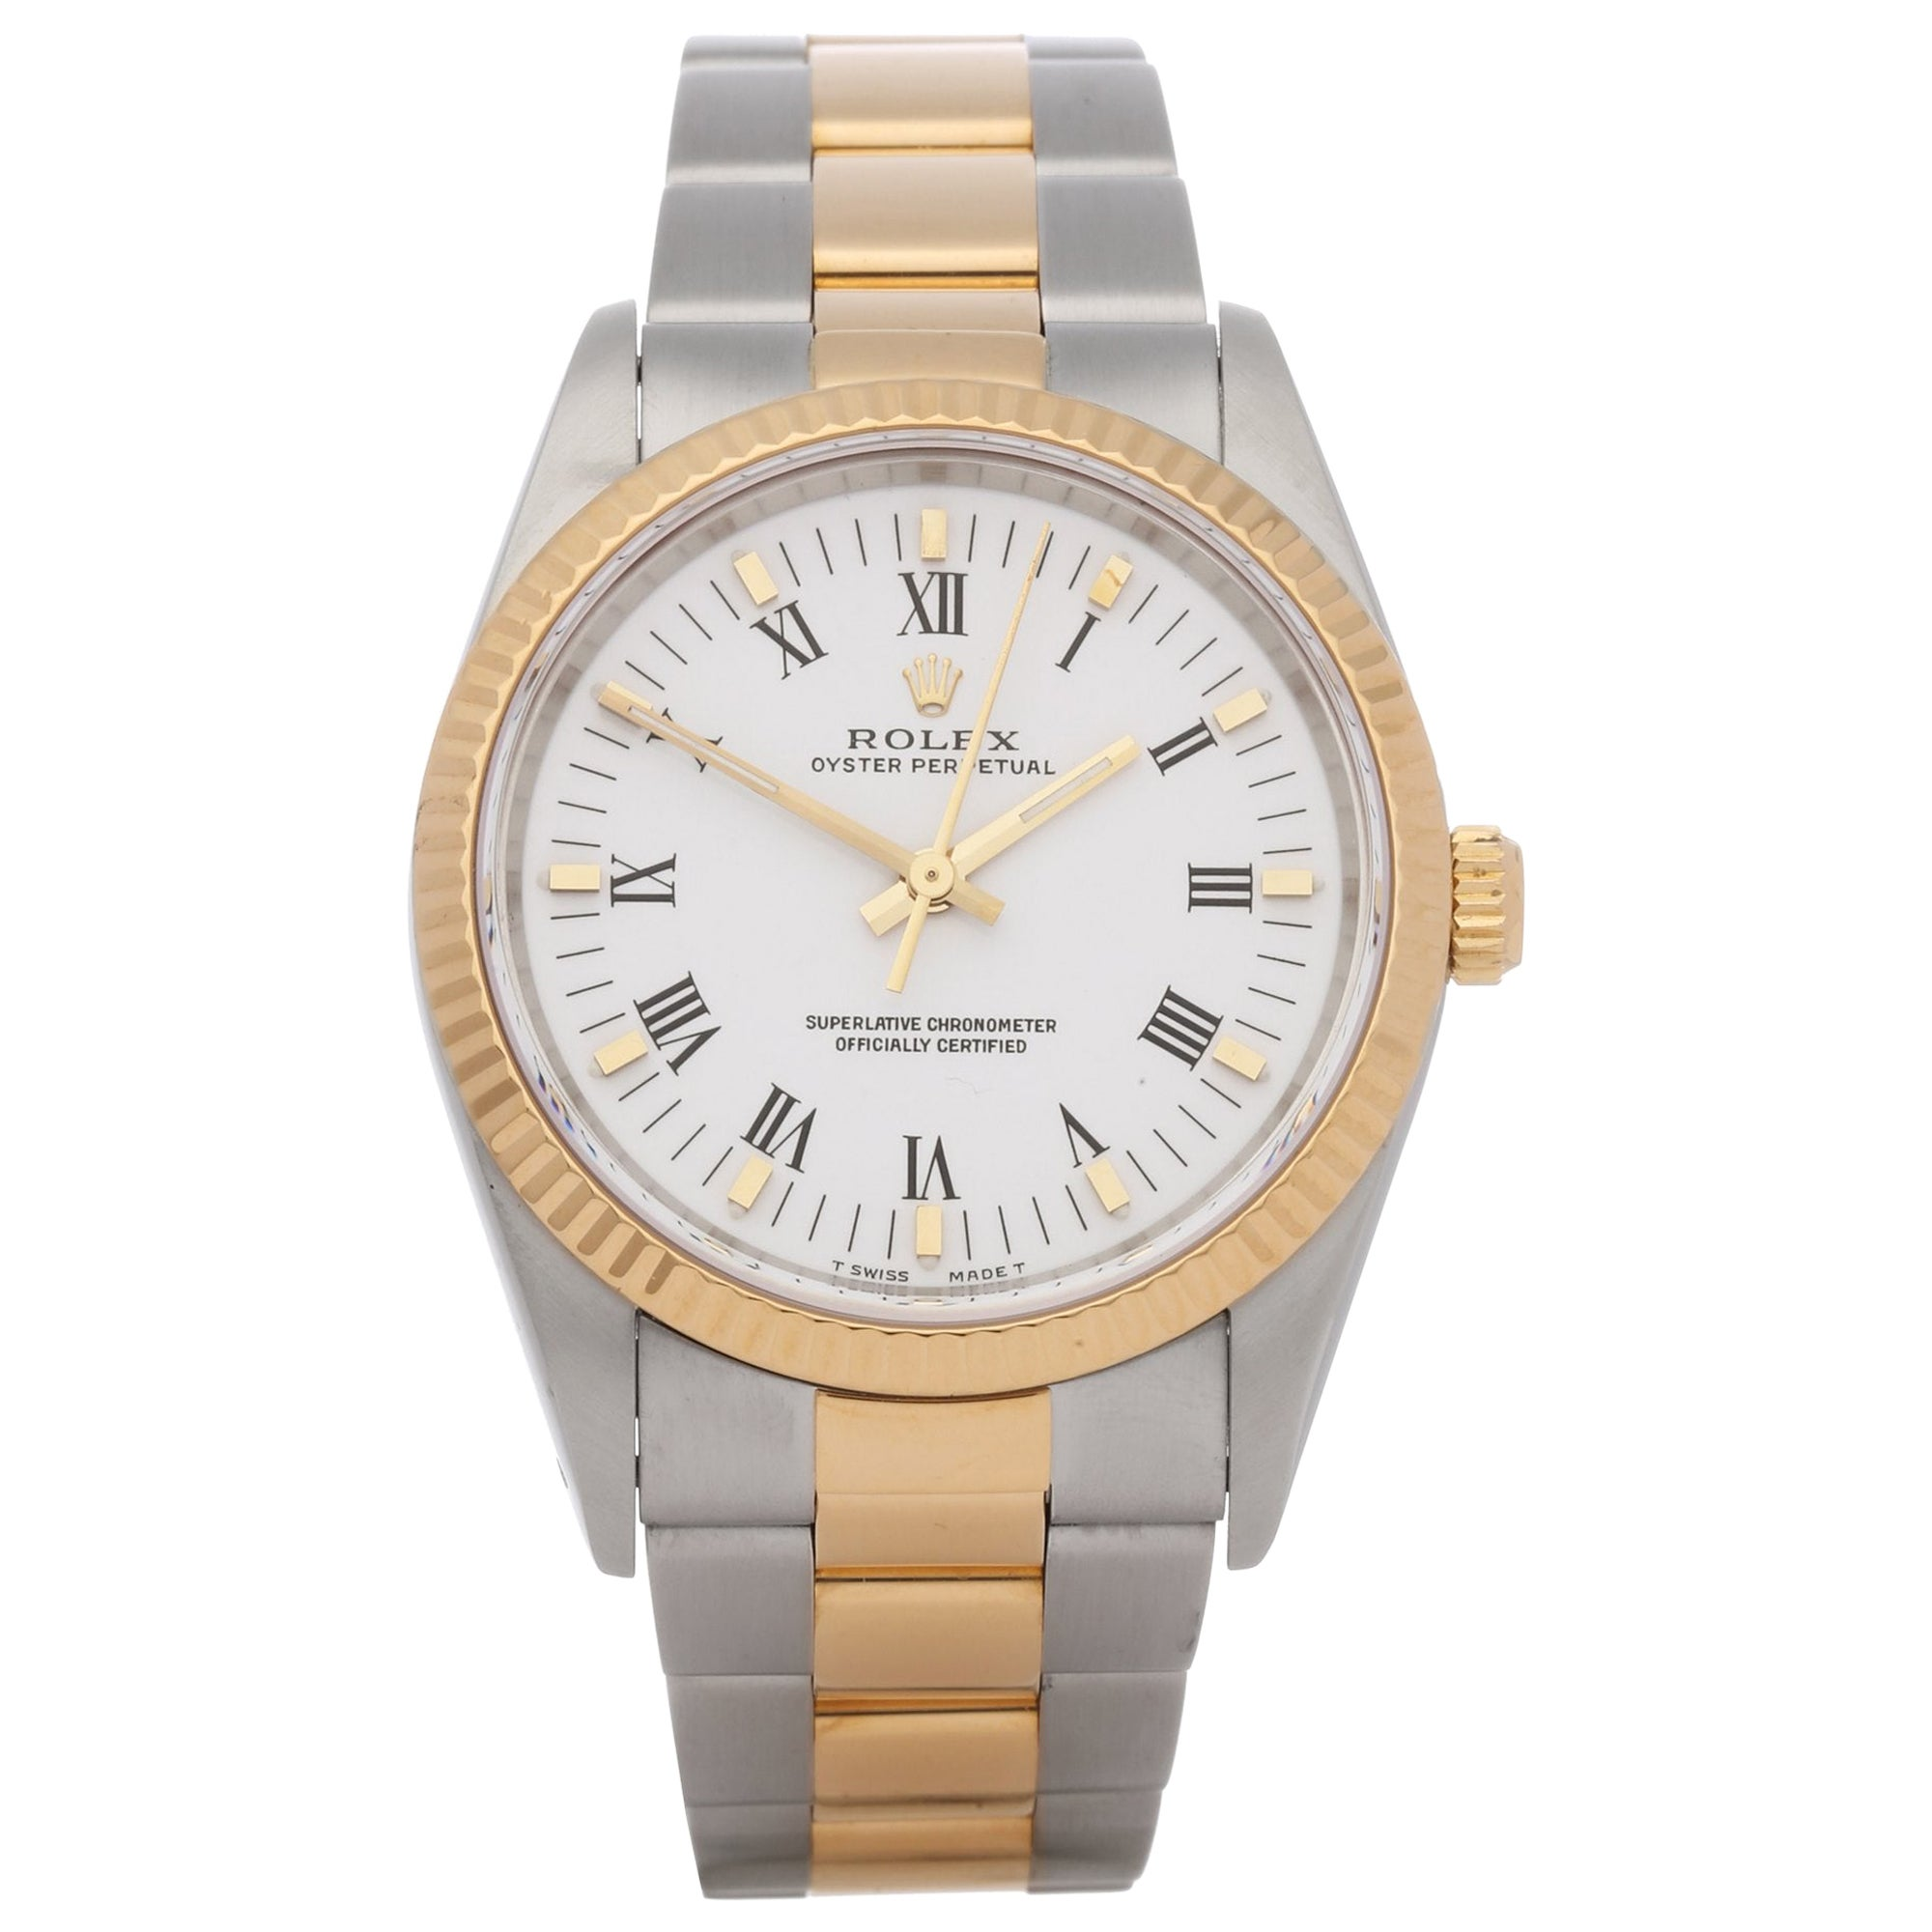 Rolex Oyster Perpetual 34 14233 Unisex Stainless Steel and Yellow Gold Watch